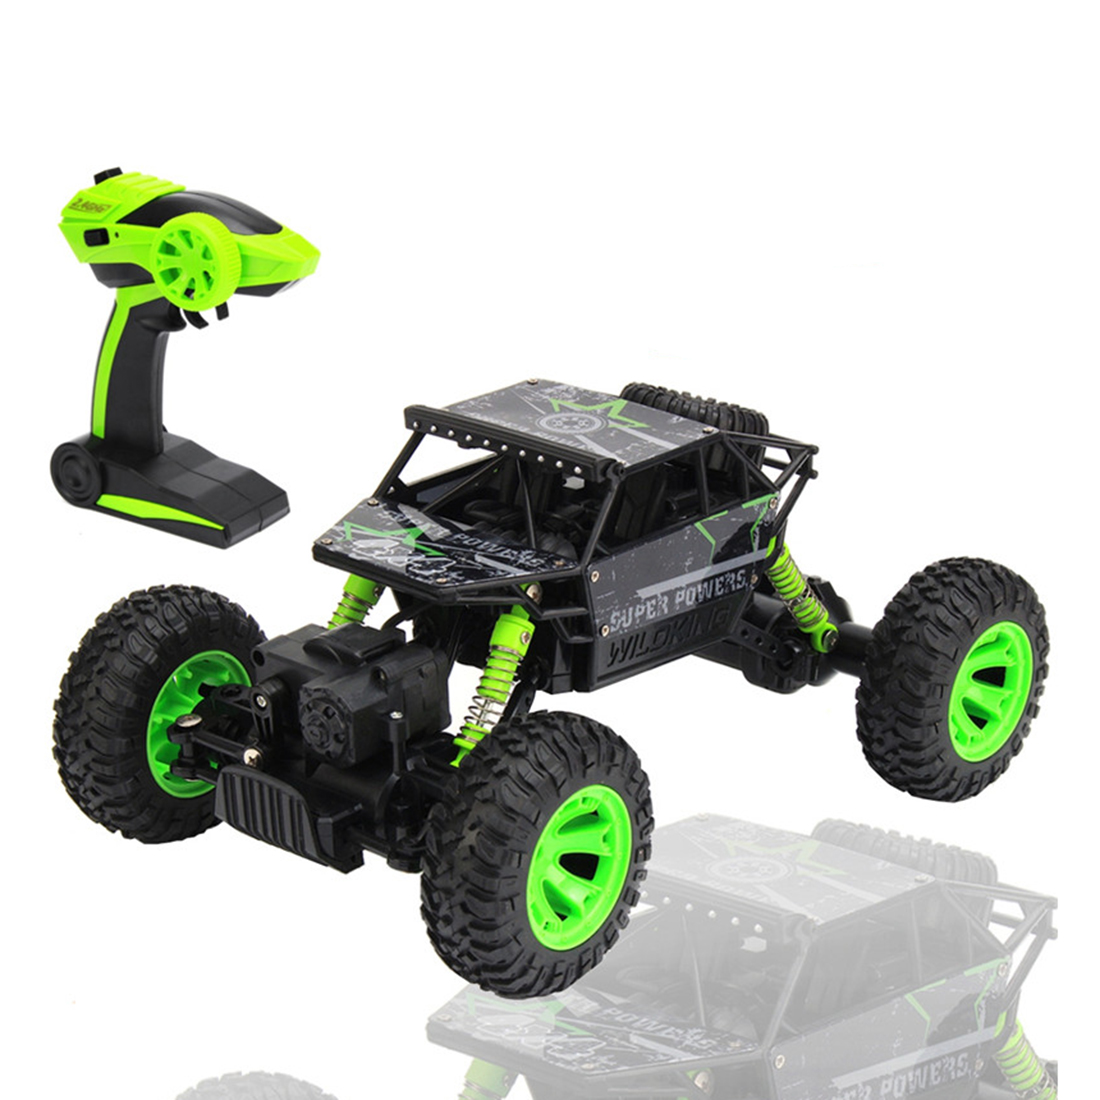 2.4GHz 1:18 Scale 4x4 Rock Crawlers Car RC Rock Crawler 4WD Off Road Race Truck Car Toy, EU Plug